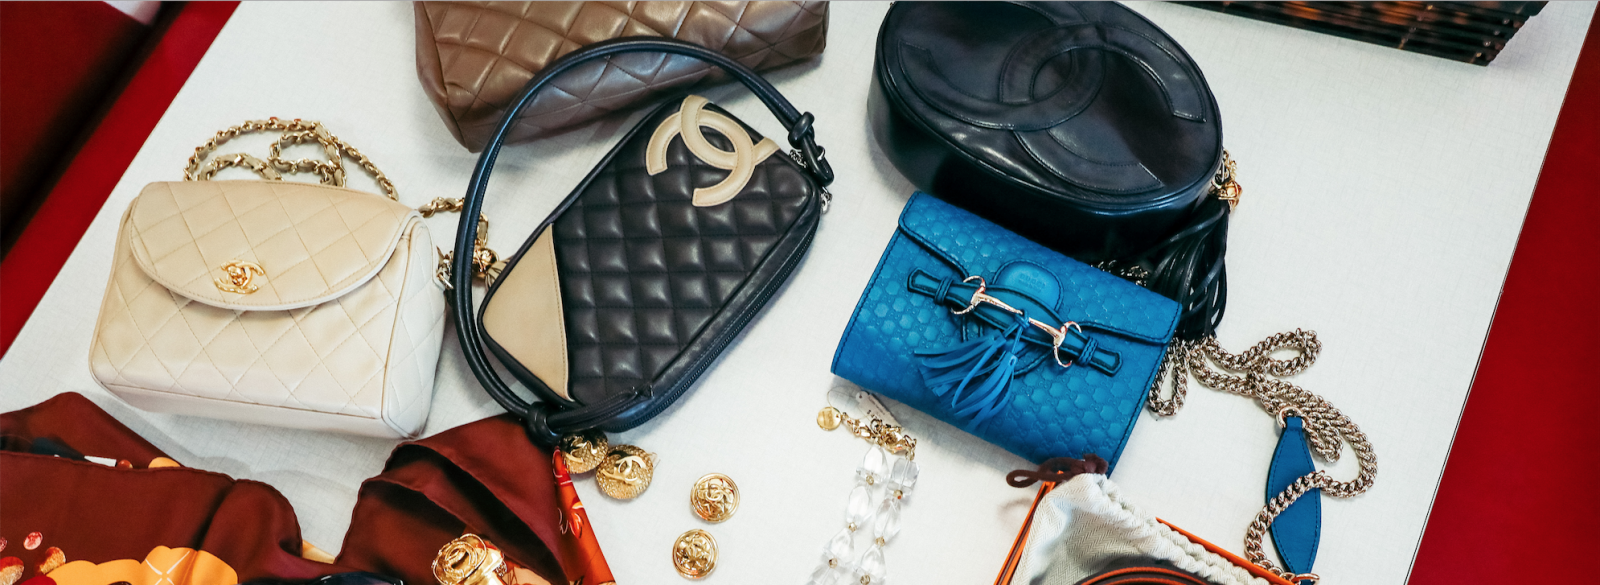 Why you should buy vintage accessories